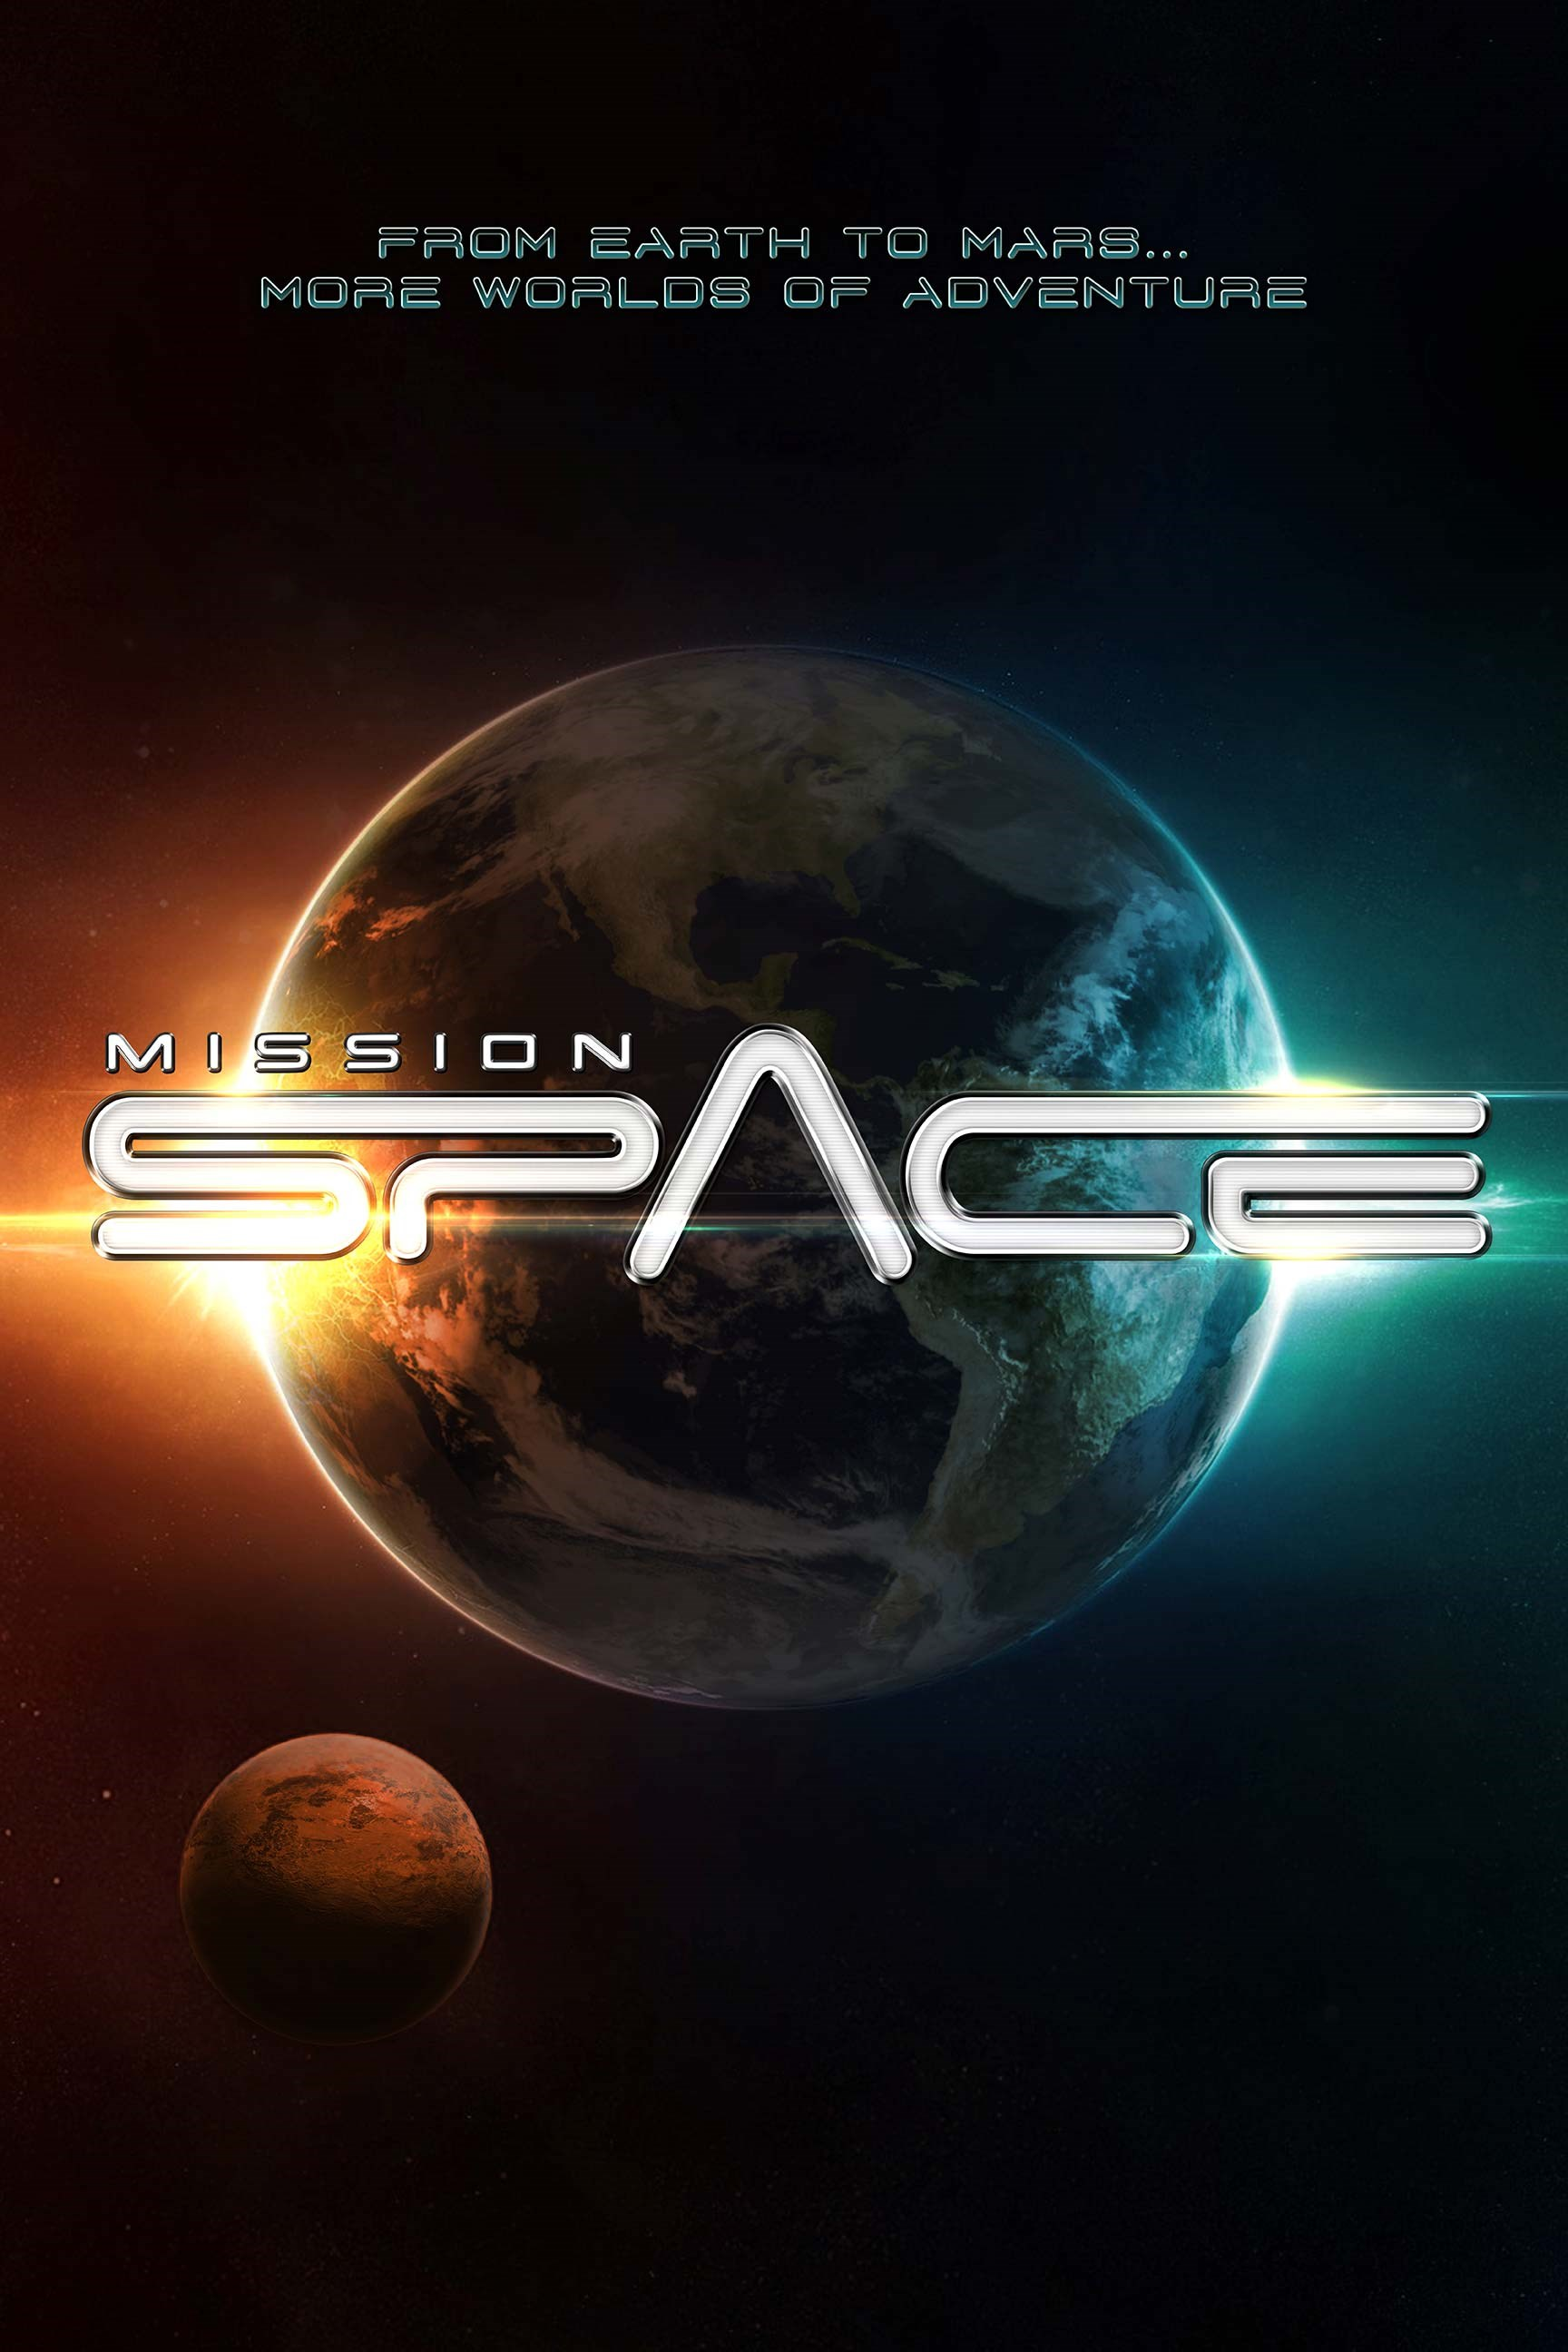 Mission: SPACE reopens August 13